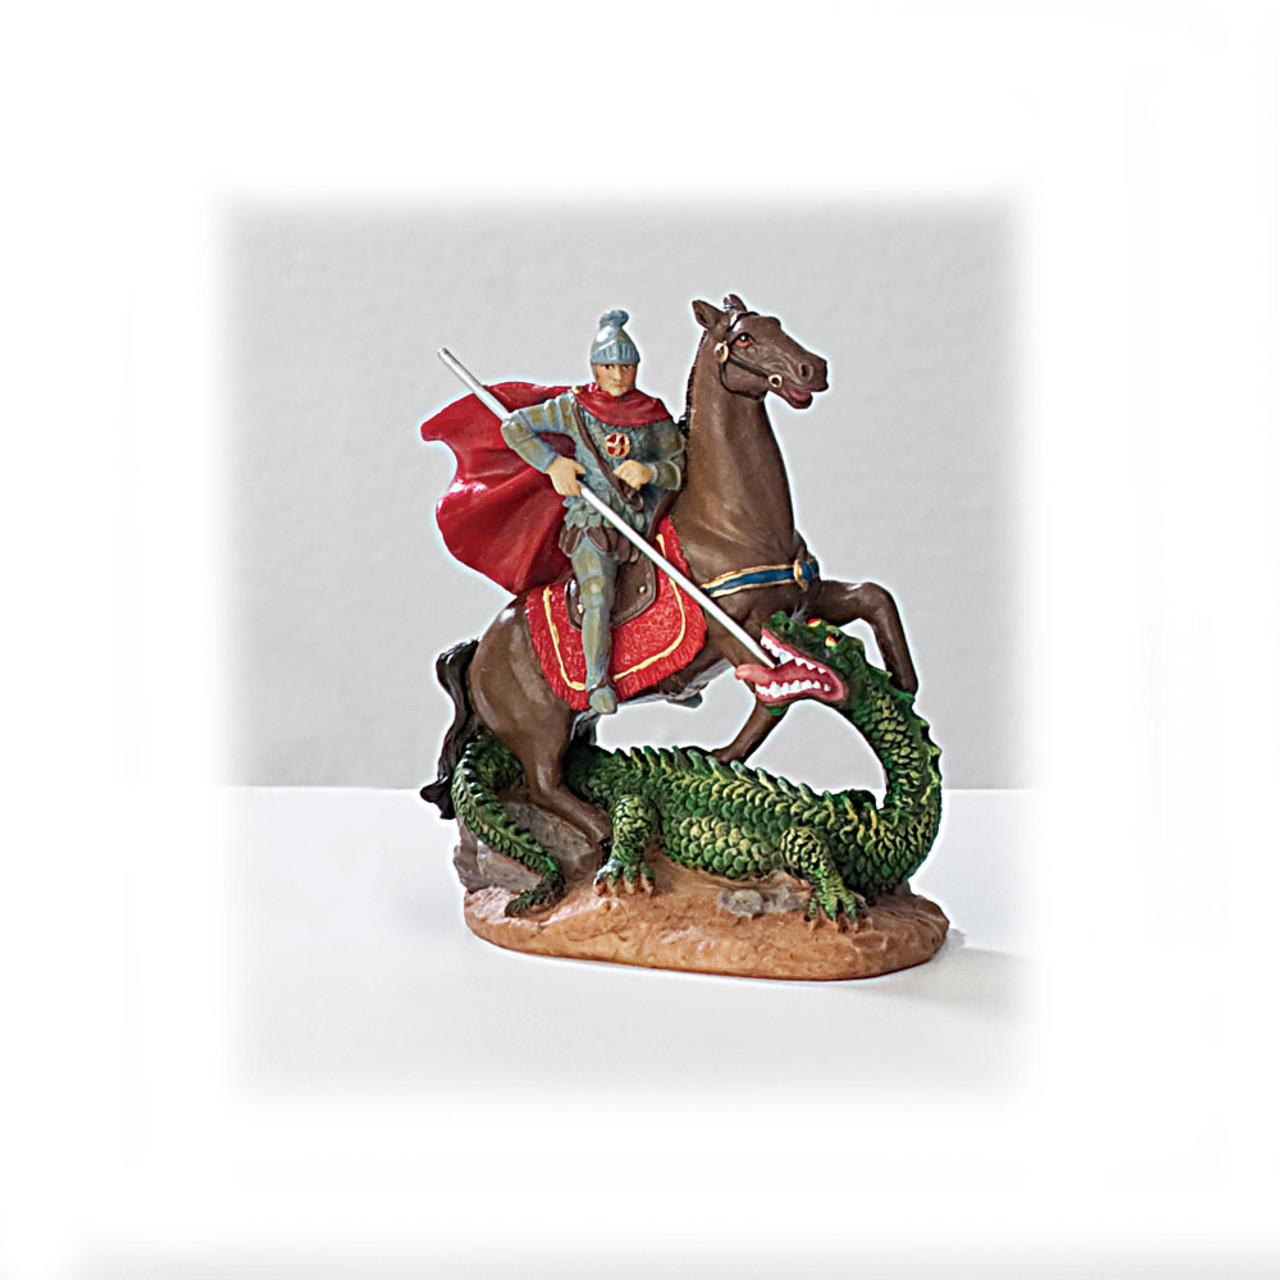 St George 4 Inch Resin Statue